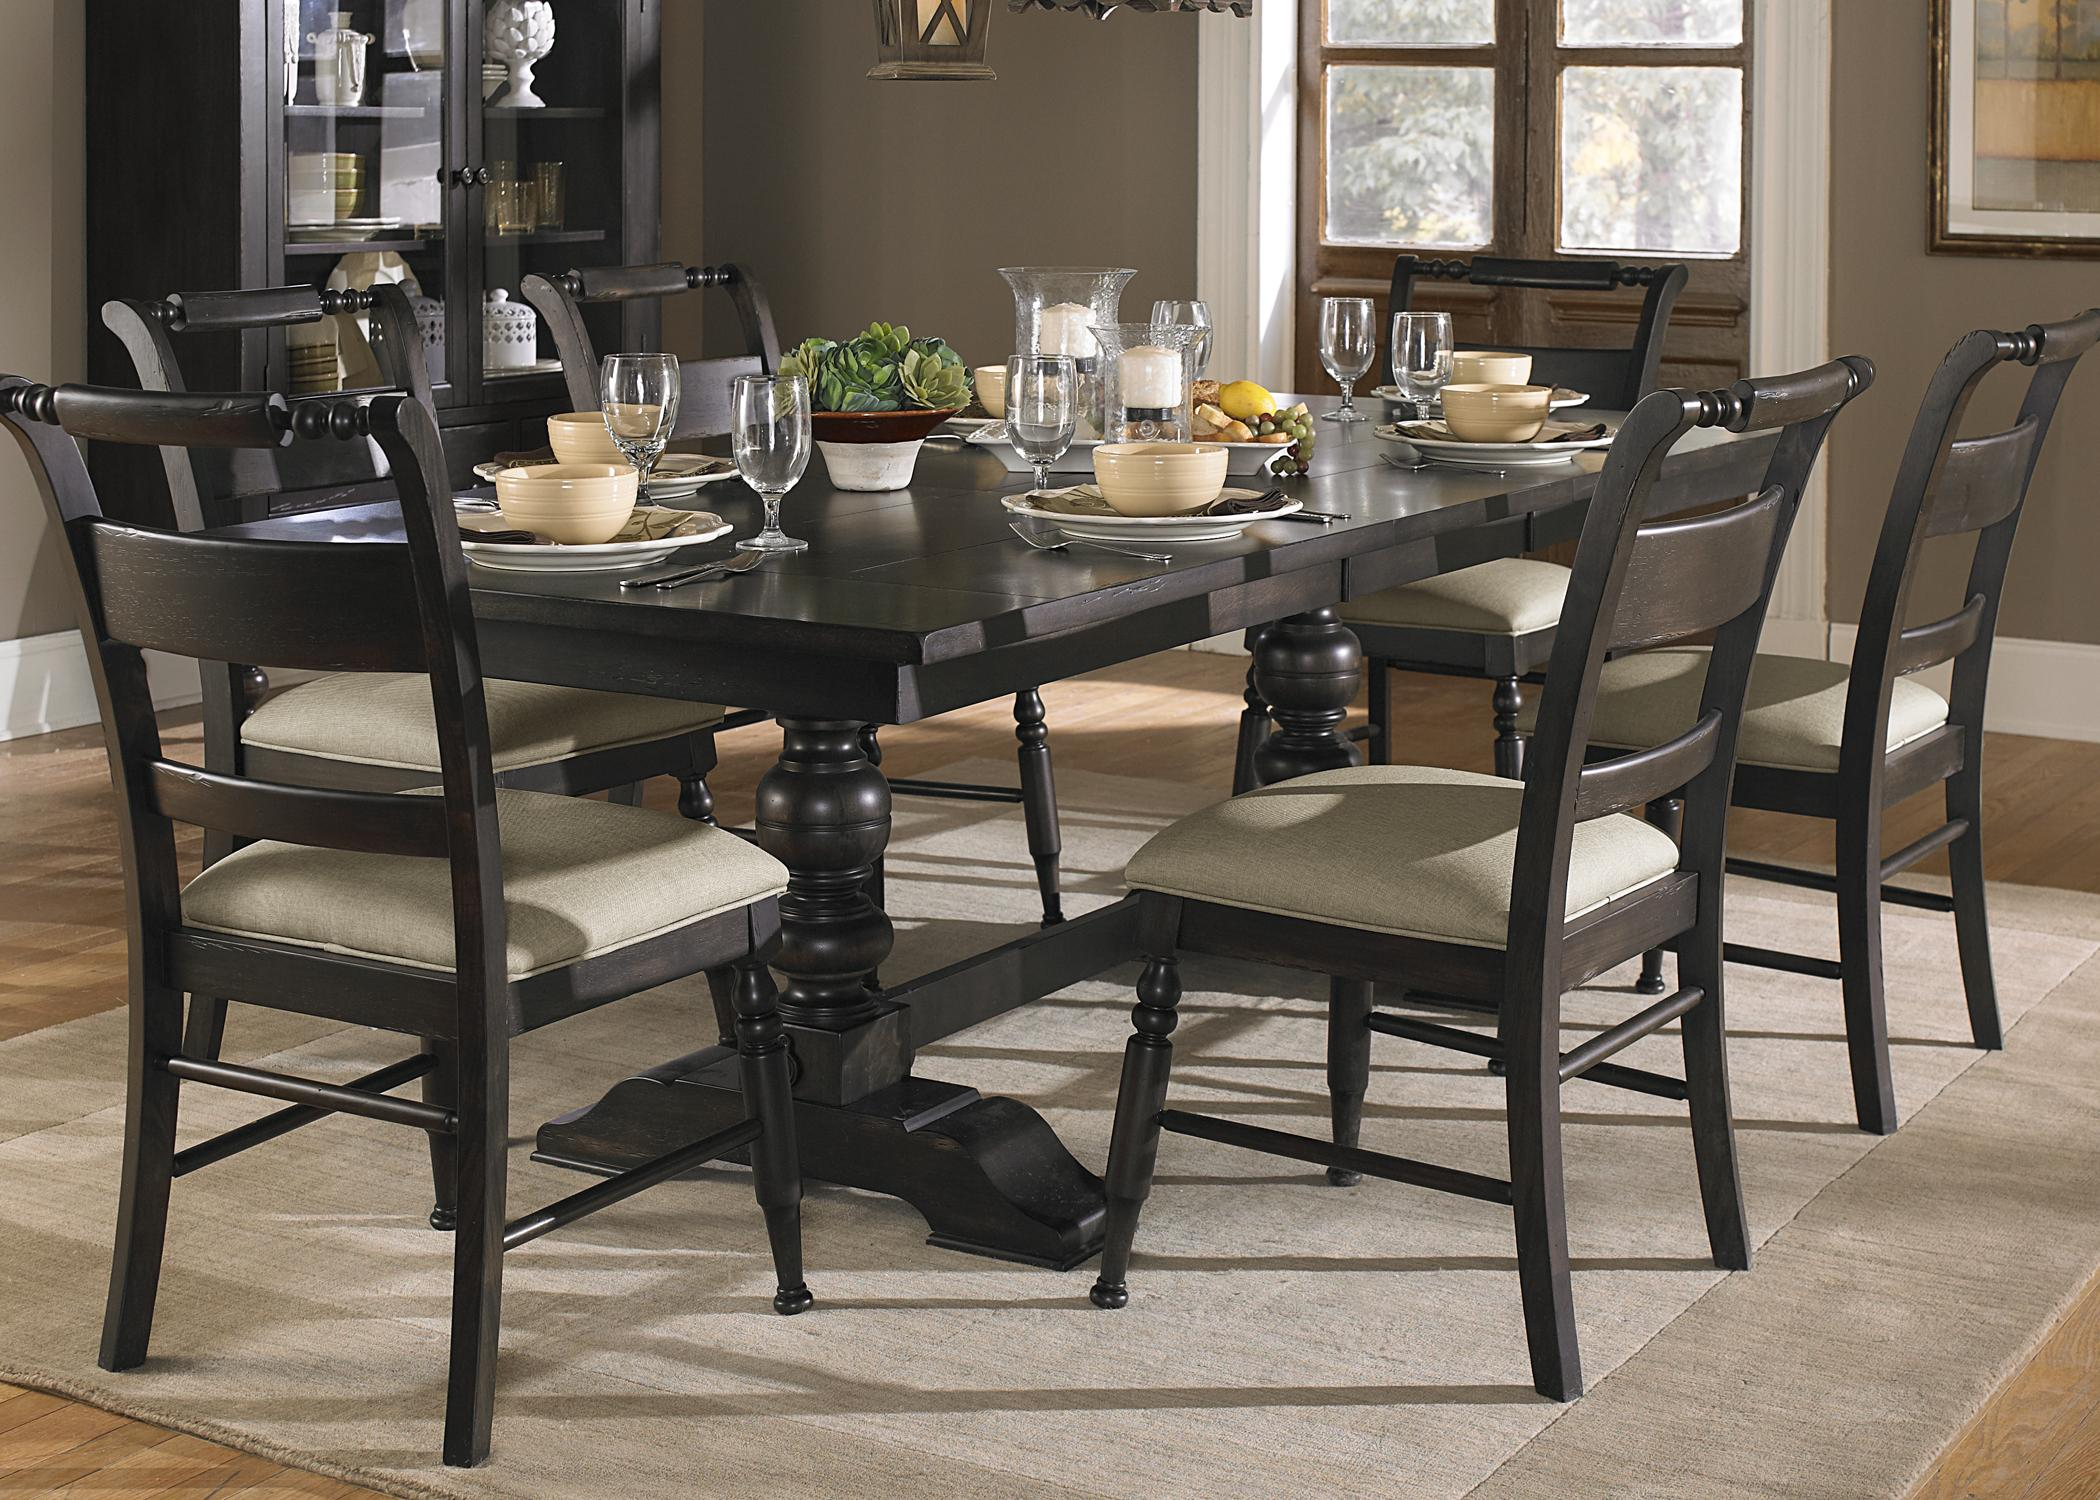 Dining Room Table And Chairs Endearing 7 Piece Trestle Dining Room Table Setliberty Furniture  Wolf Design Ideas